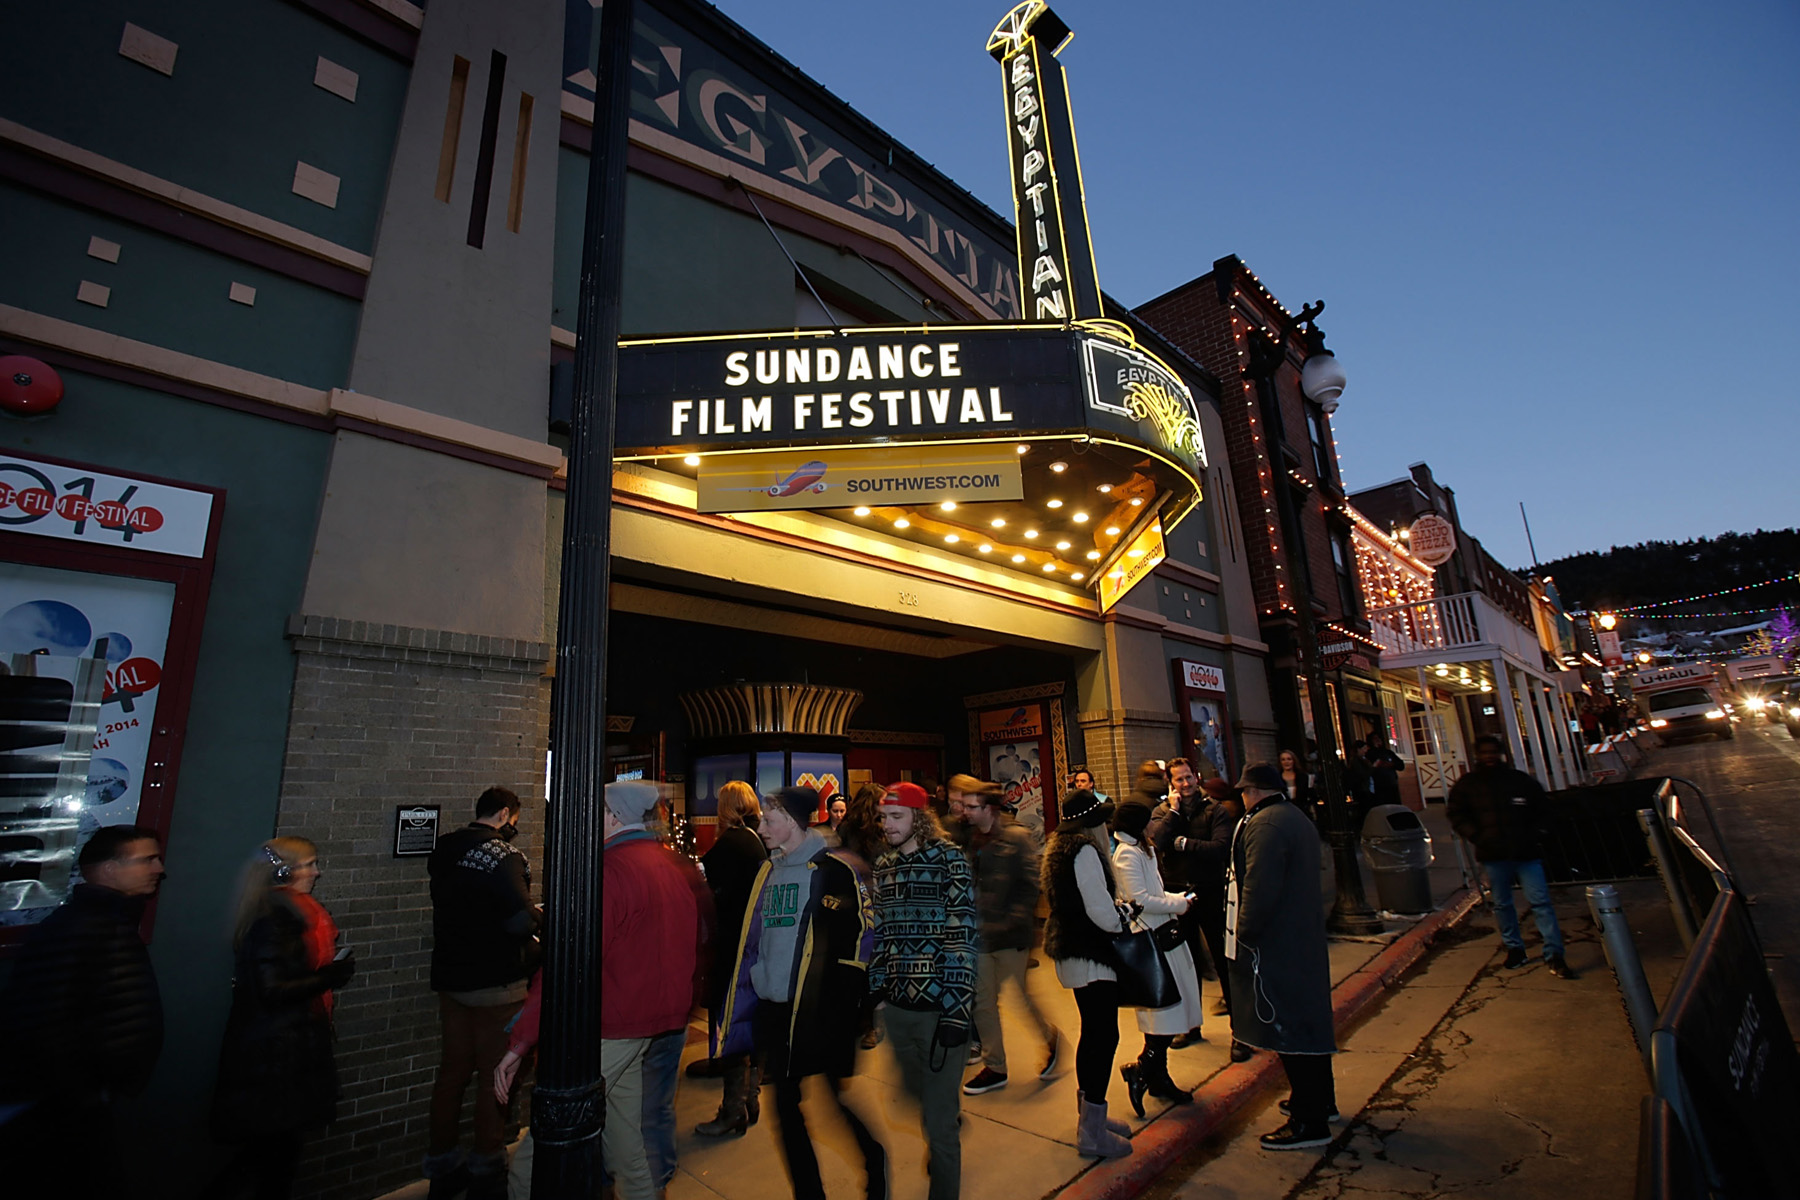 5 FACTS YOU NEVER KNEW ABOUT SUNDANCE